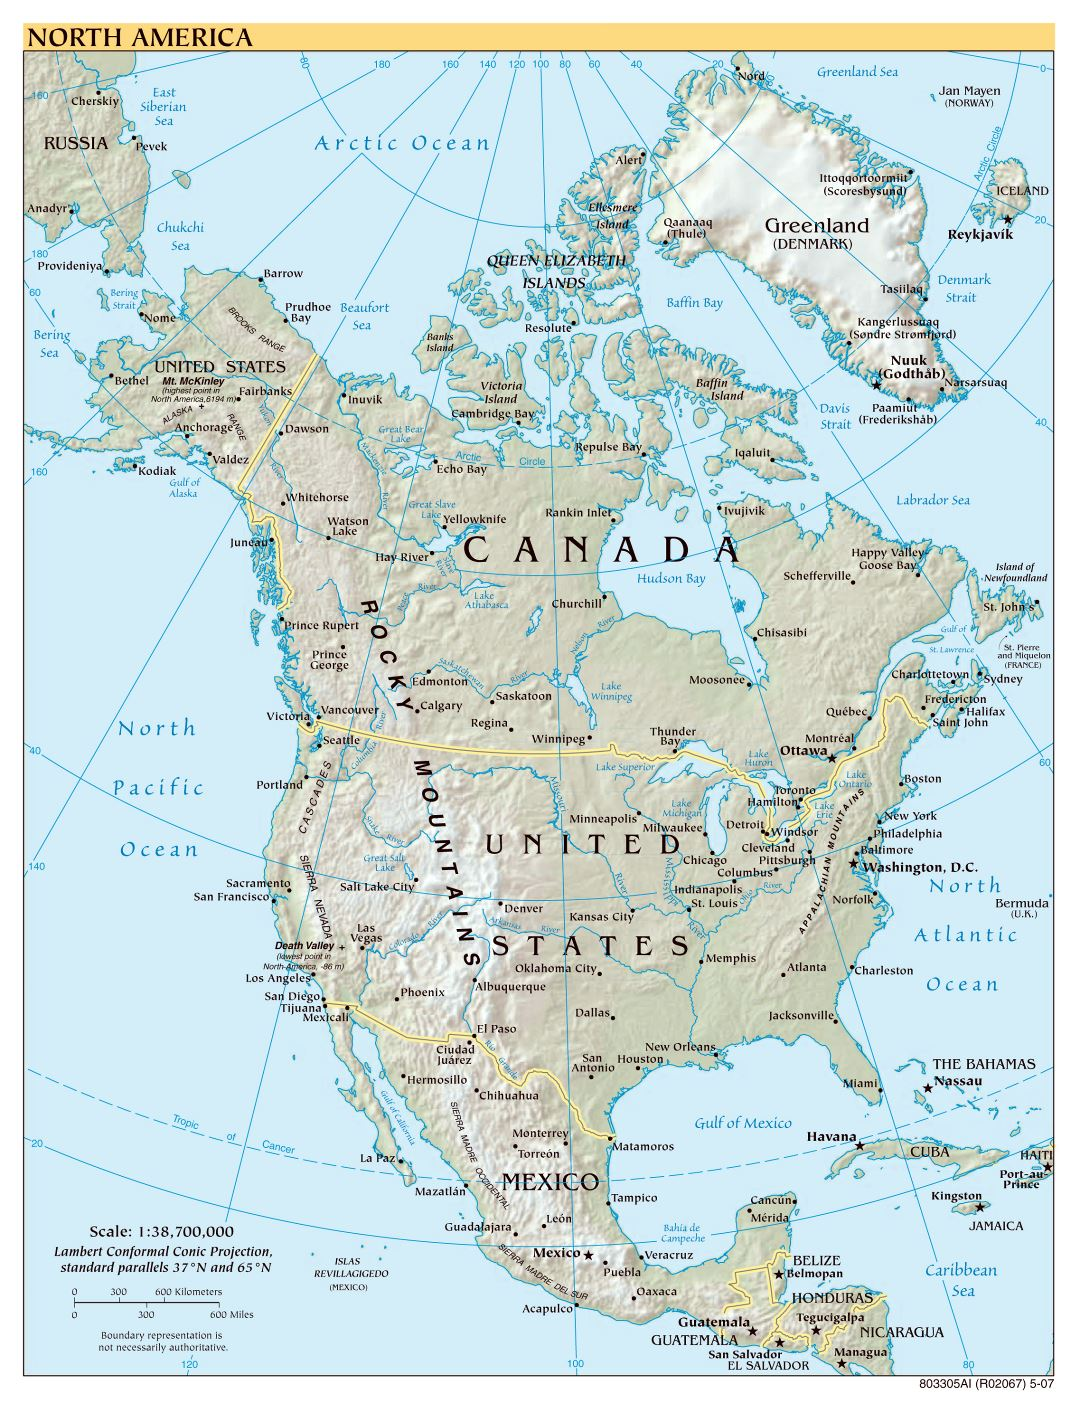 Large scale political map of North America with relief - 2007